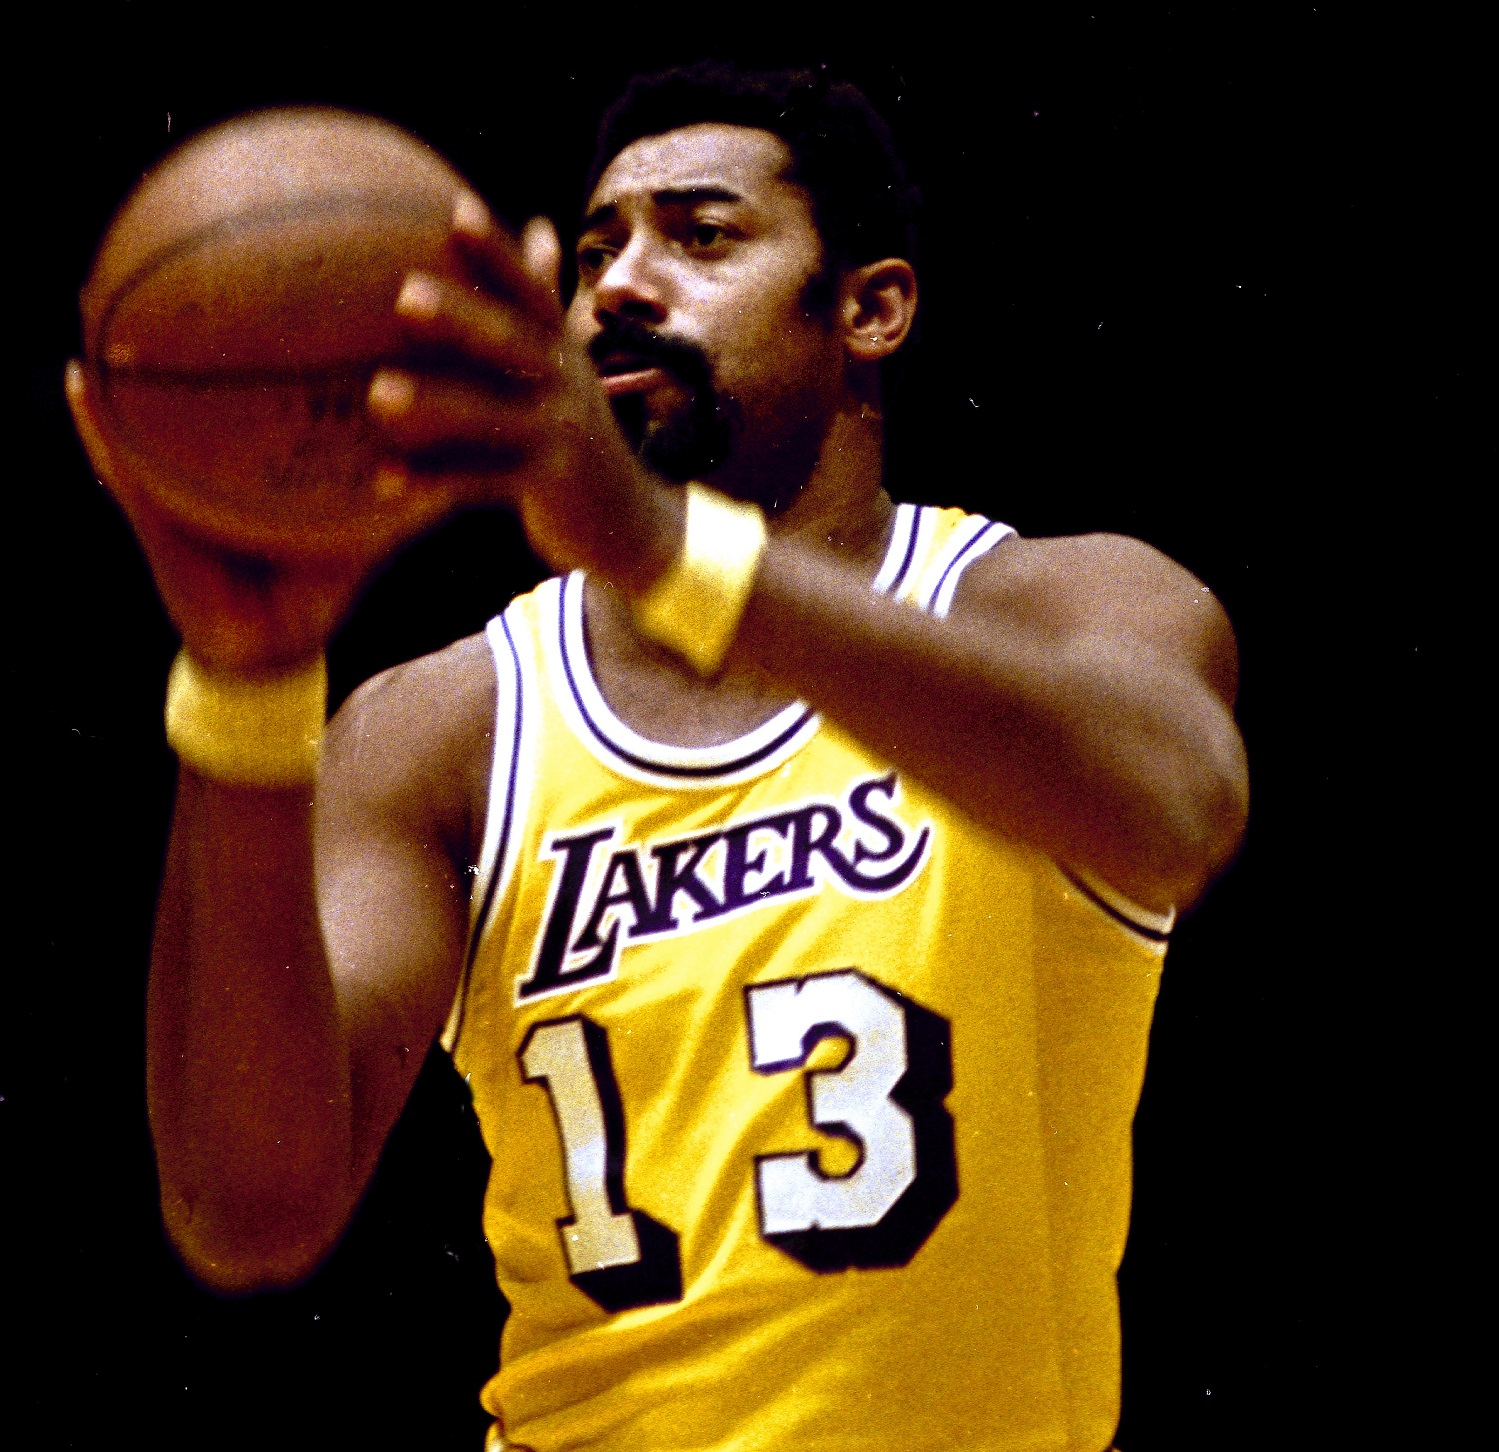 an introduction to the life and basketball history of wilt chamberlain Wilt chamberlain 1936-1999 american basketball player in a 14-year professional career studded with superla-tives, wilt chamberlain established the centrality of.